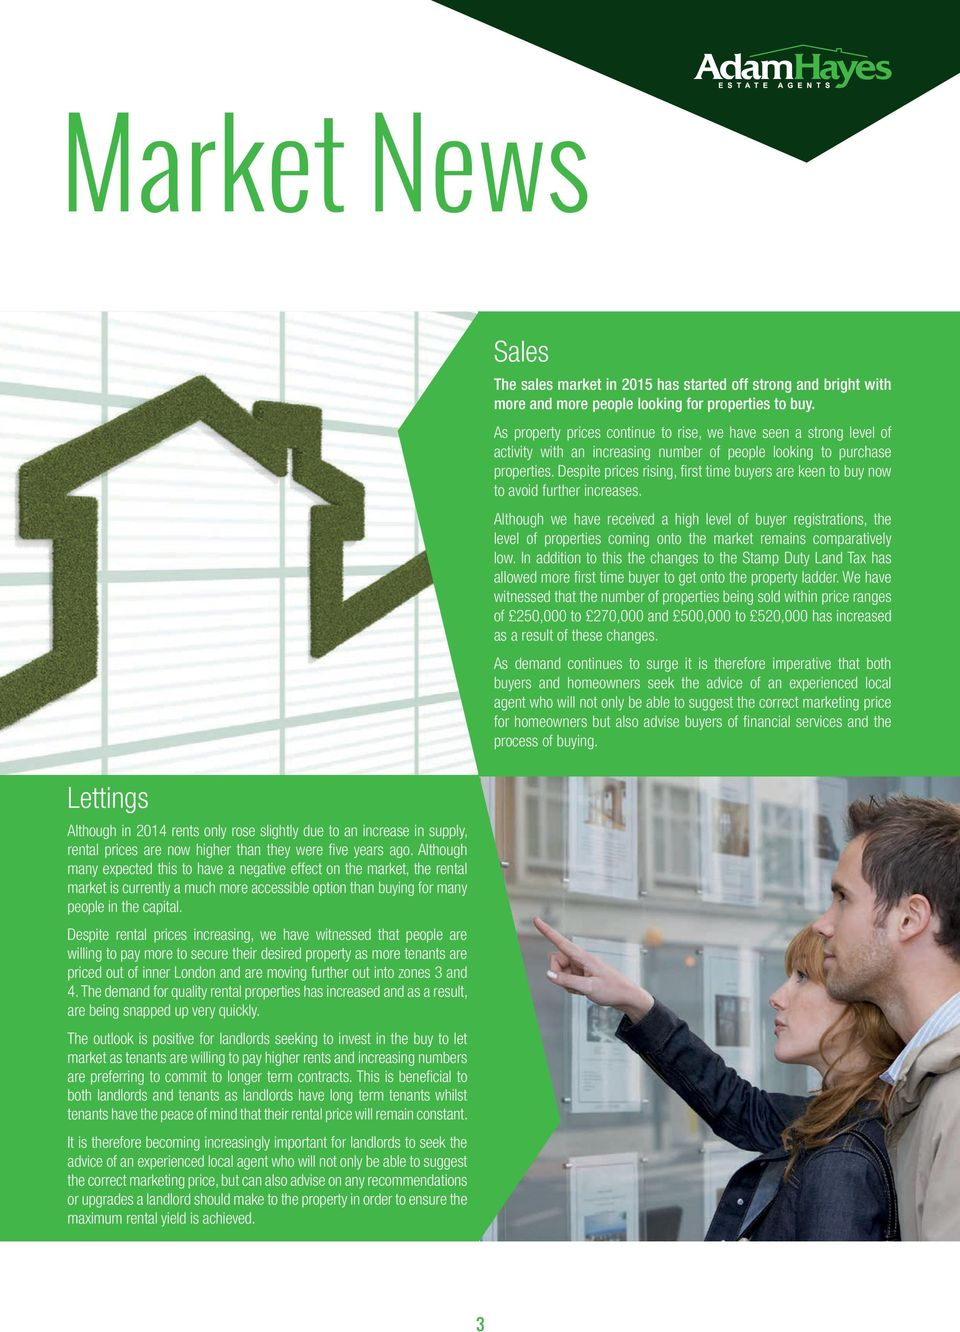 Despite rental prices increasing, we have witnessed that people are willing to pay more to secure their desired property as more tenants are priced out of inner London and are moving further out into